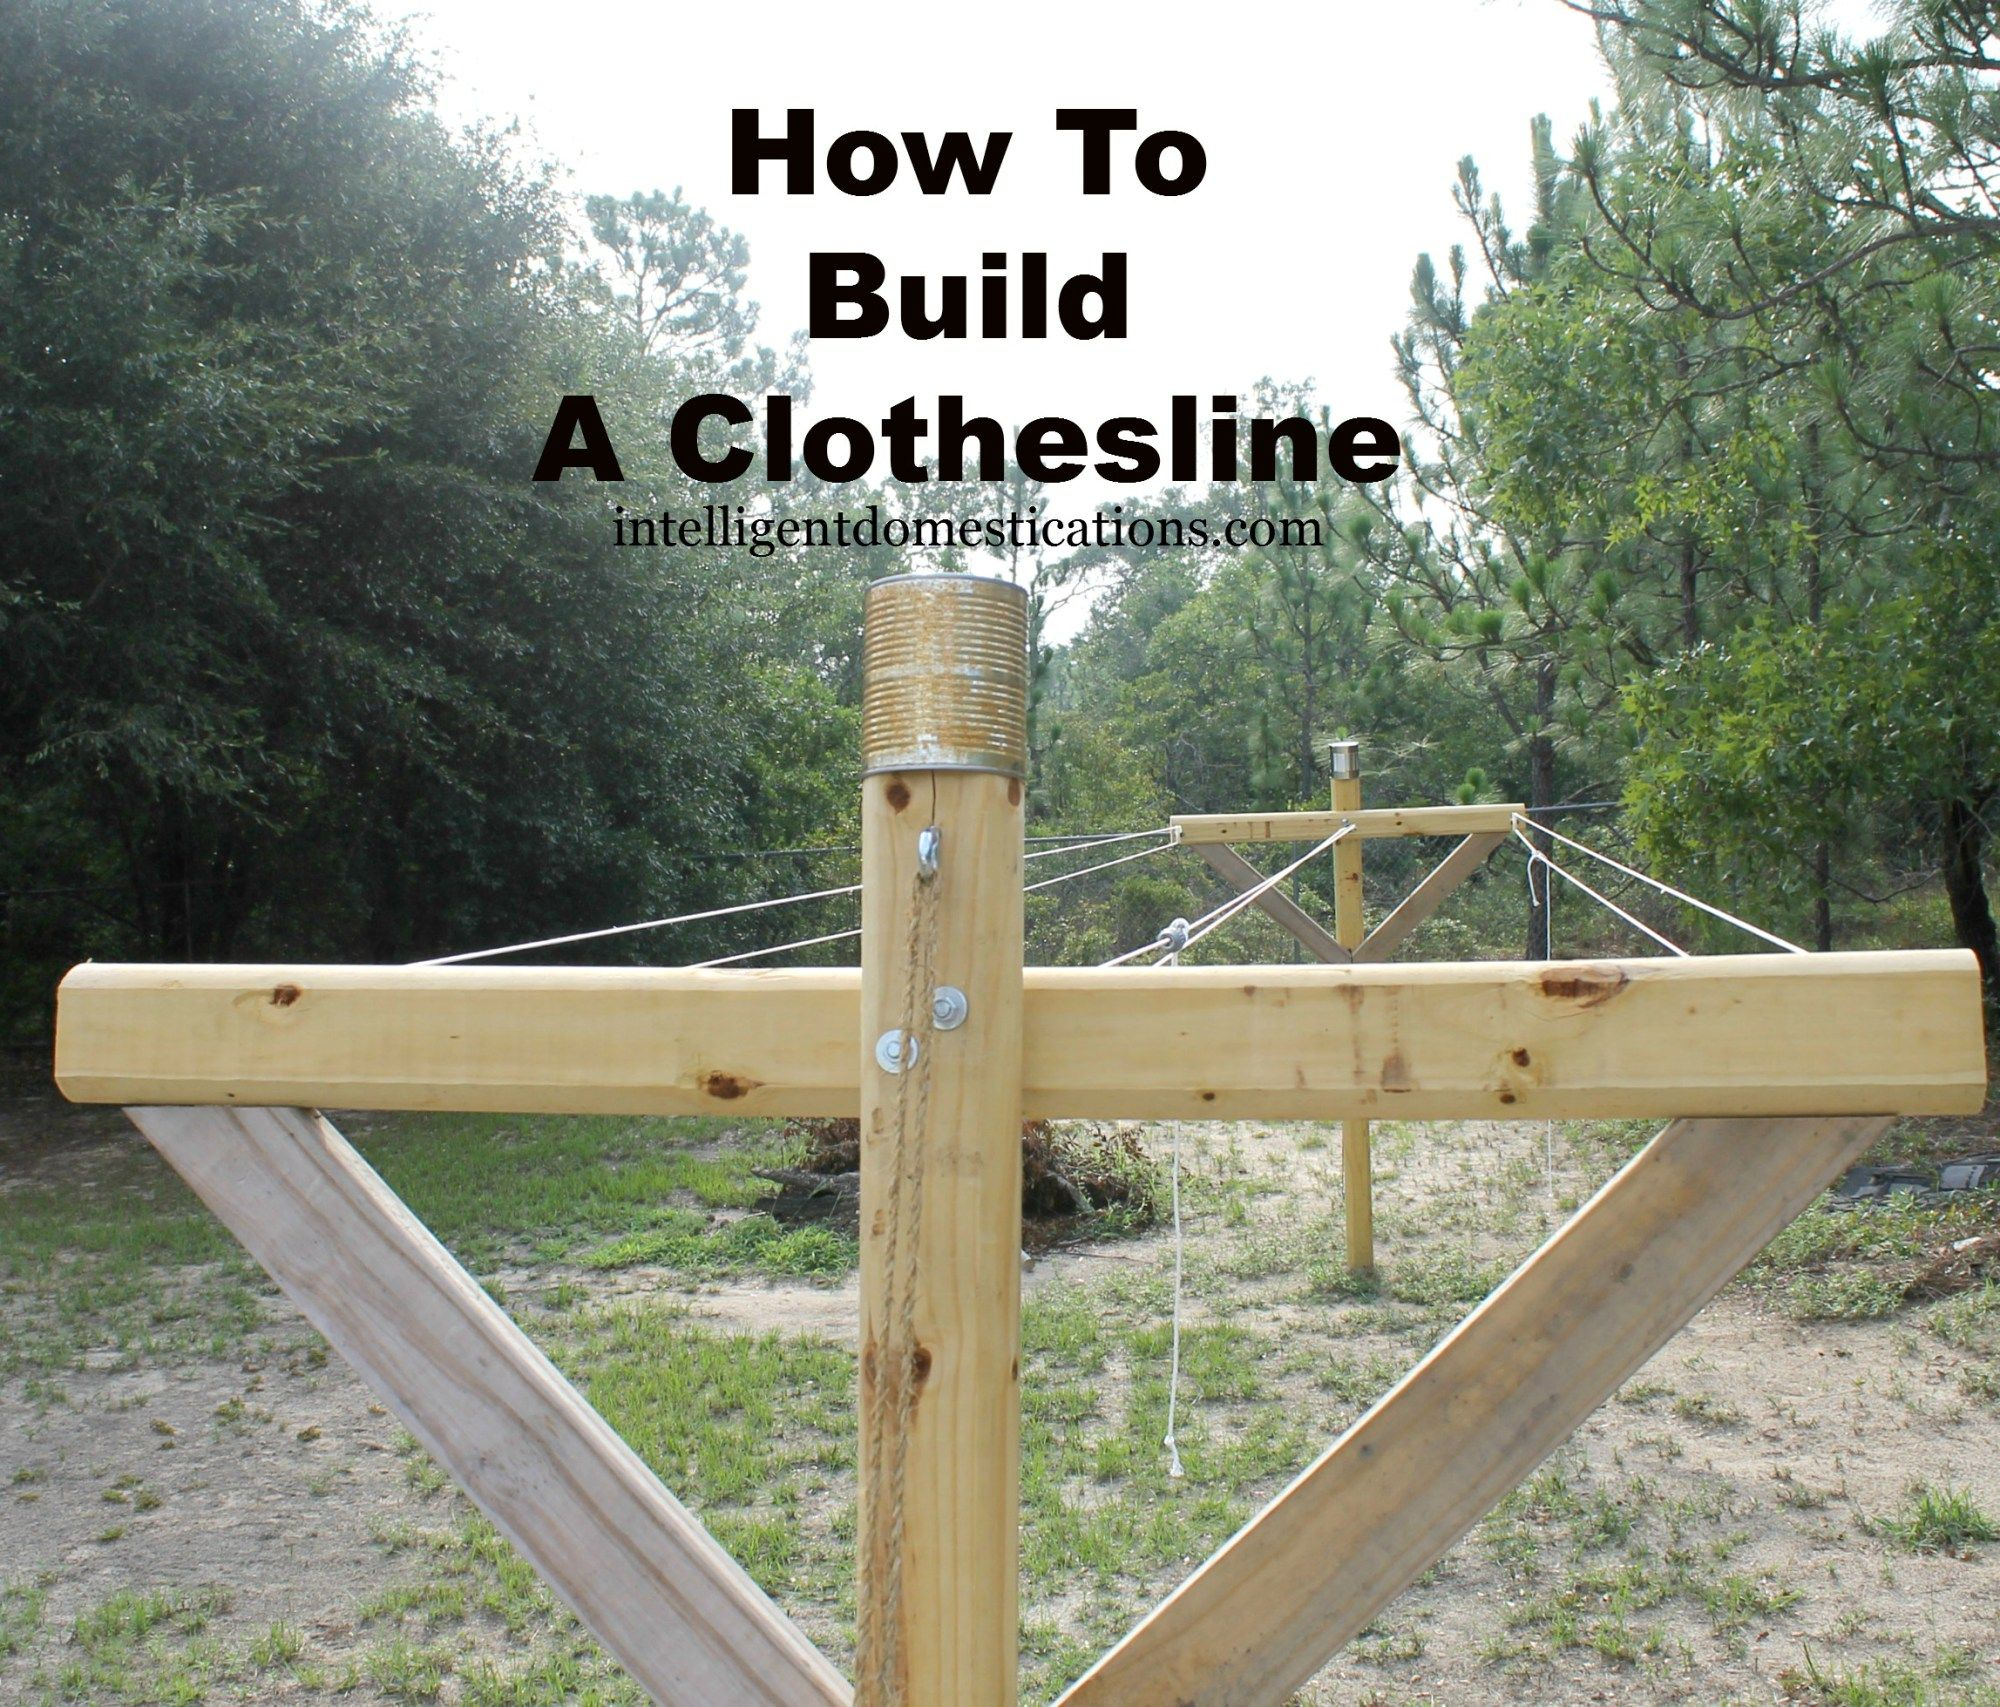 How To Build A Clothesline How To Build A Clothesline